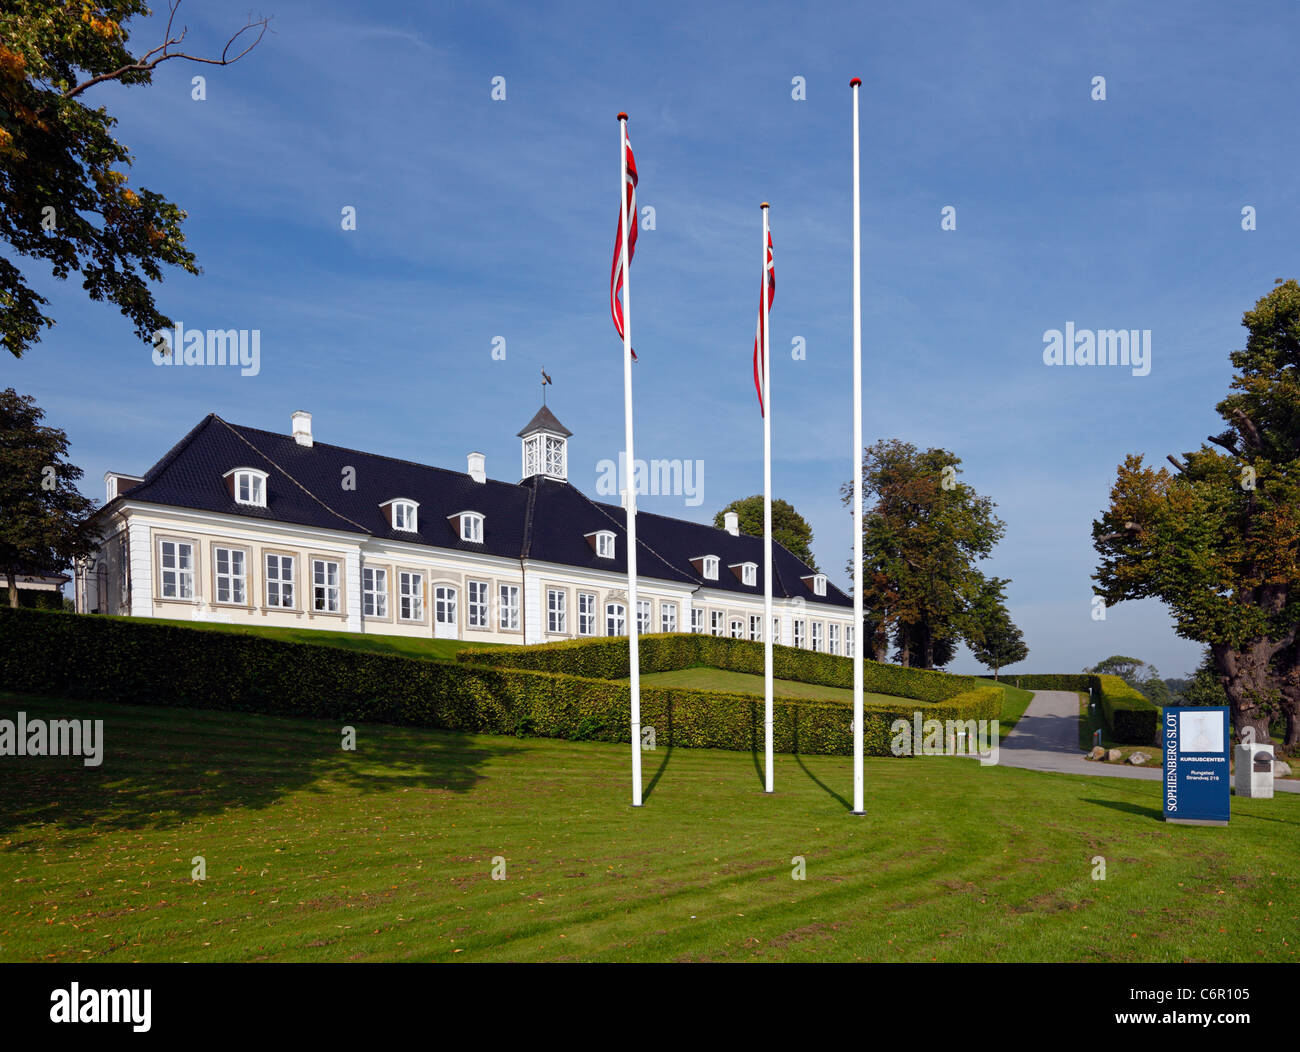 The Sophienberg Palace in Rungsted Kyst - the most beautiful conference center in North Zealand, Denmark - Stock Image